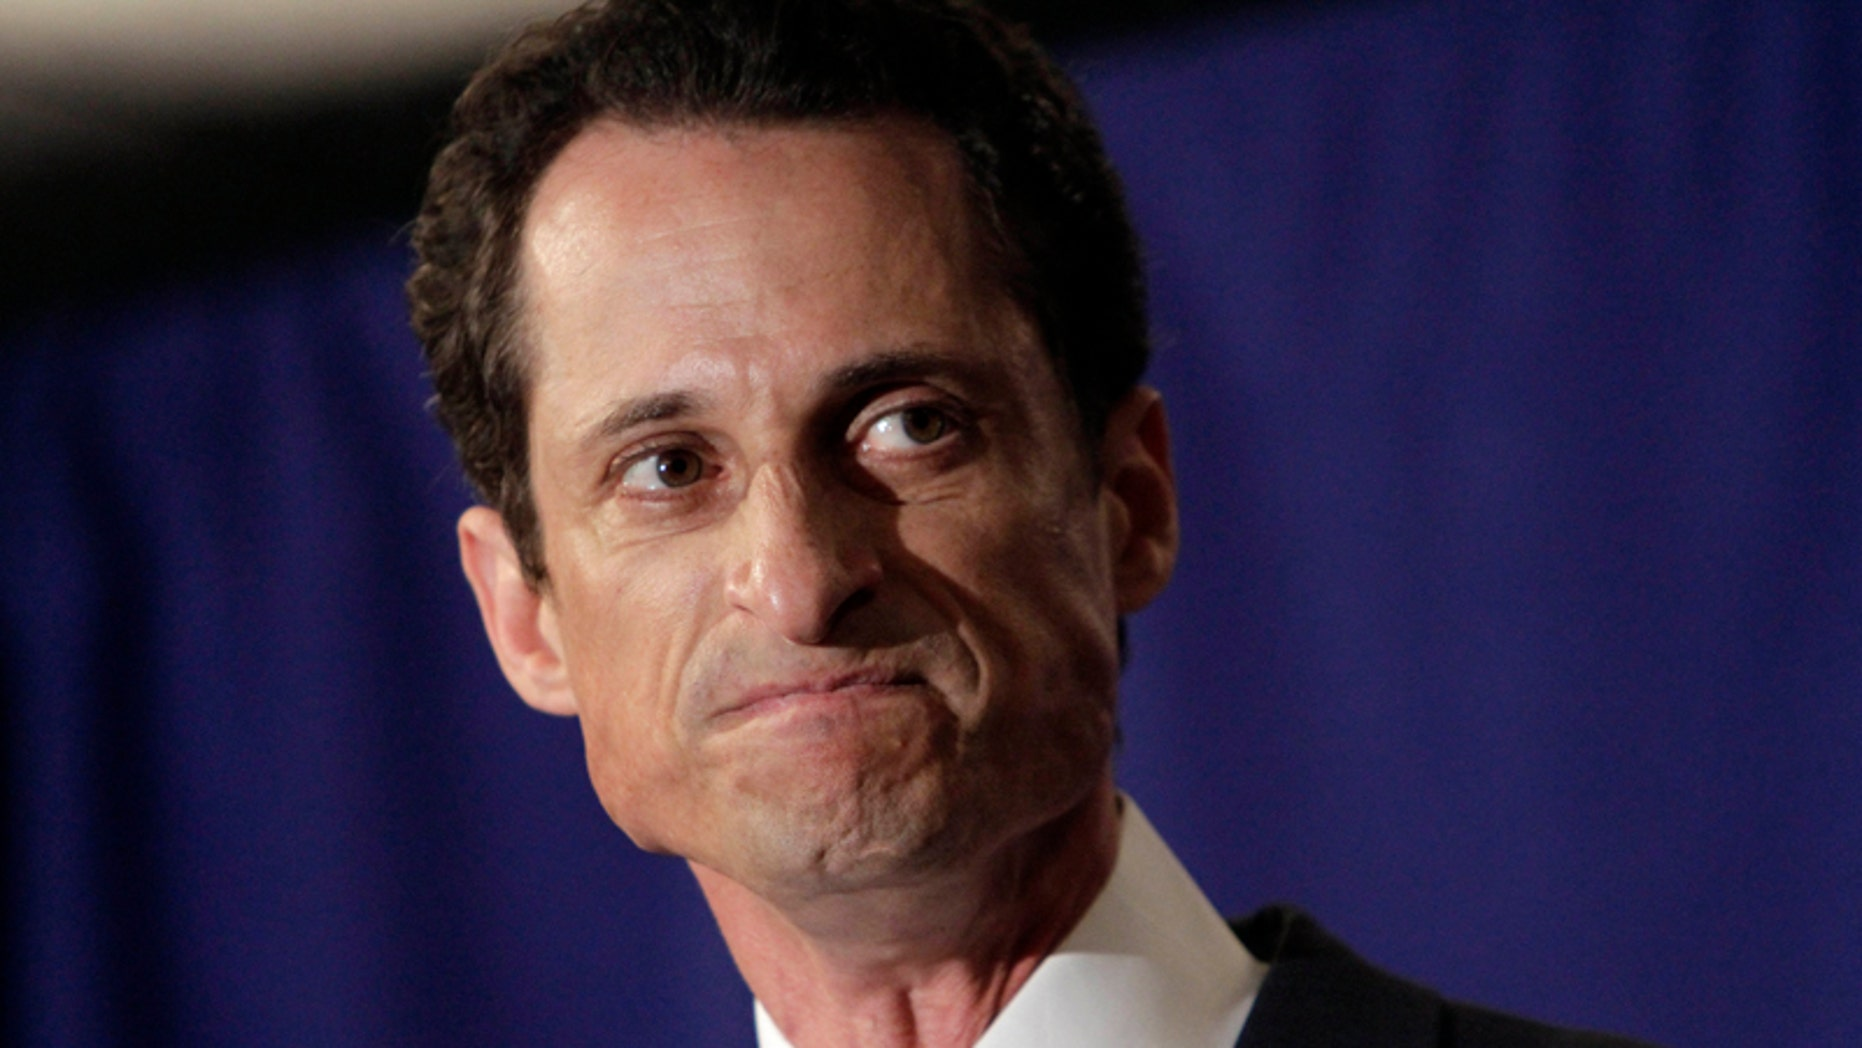 """U.S. Rep. Anthony Weiner, D-N.Y., reacts during a news conference in New York,  Monday, June 6, 2011. After days of denials, a choked-up New York Democratic Rep. Anthony Weiner confessed Monday that he tweeted a bulging-underpants photo of himself to a young woman and admitted to """"inappropriate"""" exchanges with six women before and after getting married."""